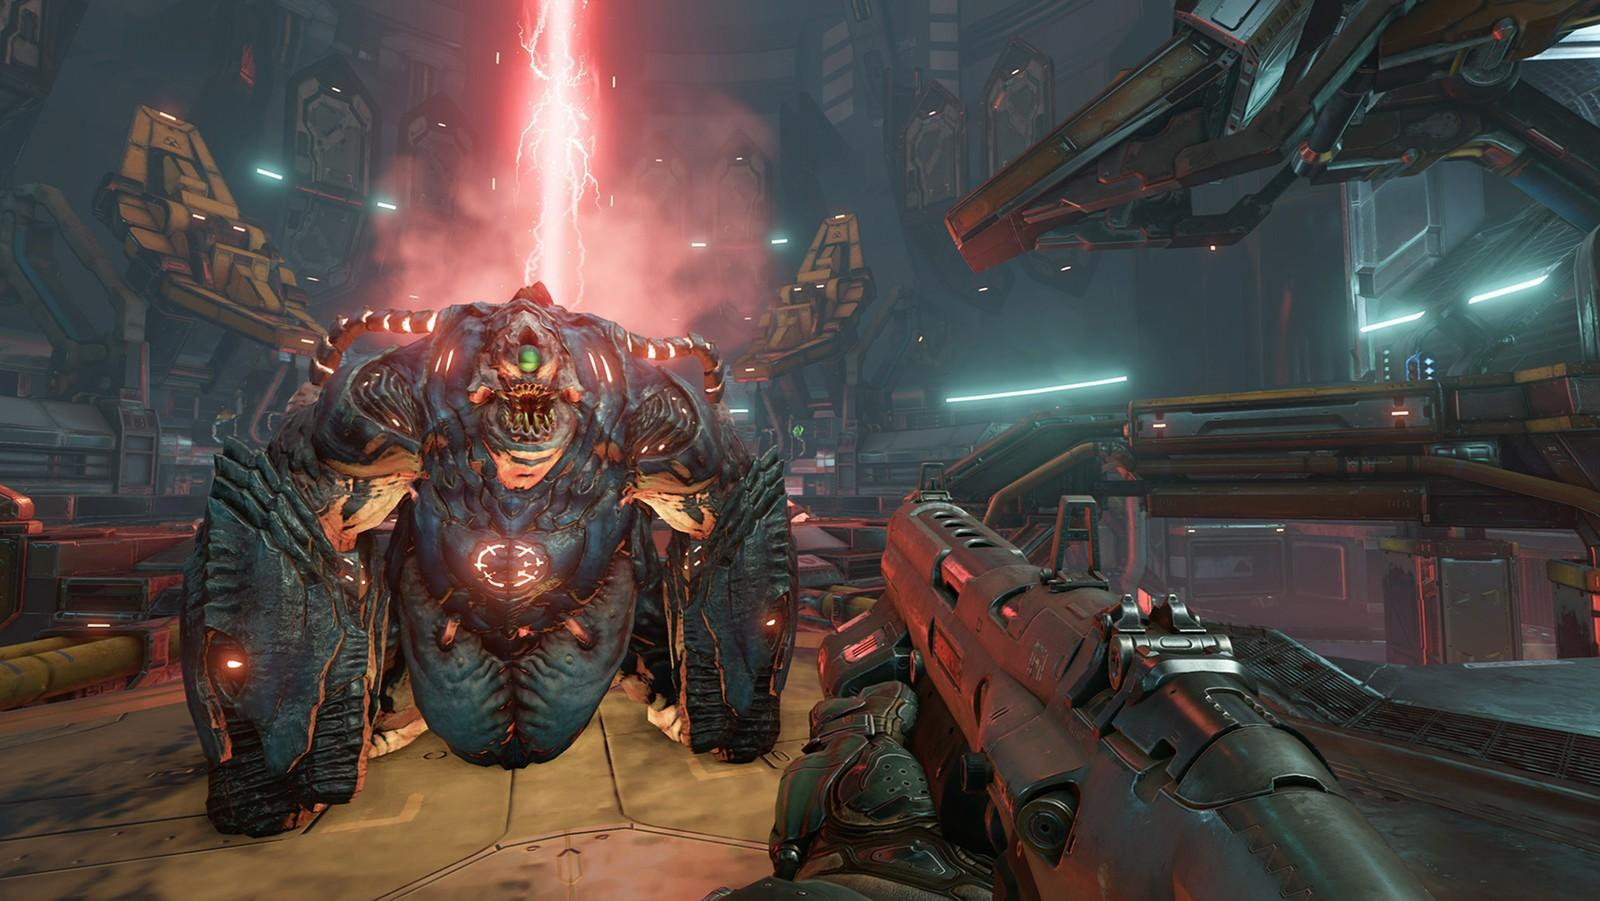 Doom was one of the best shooters in the last few years